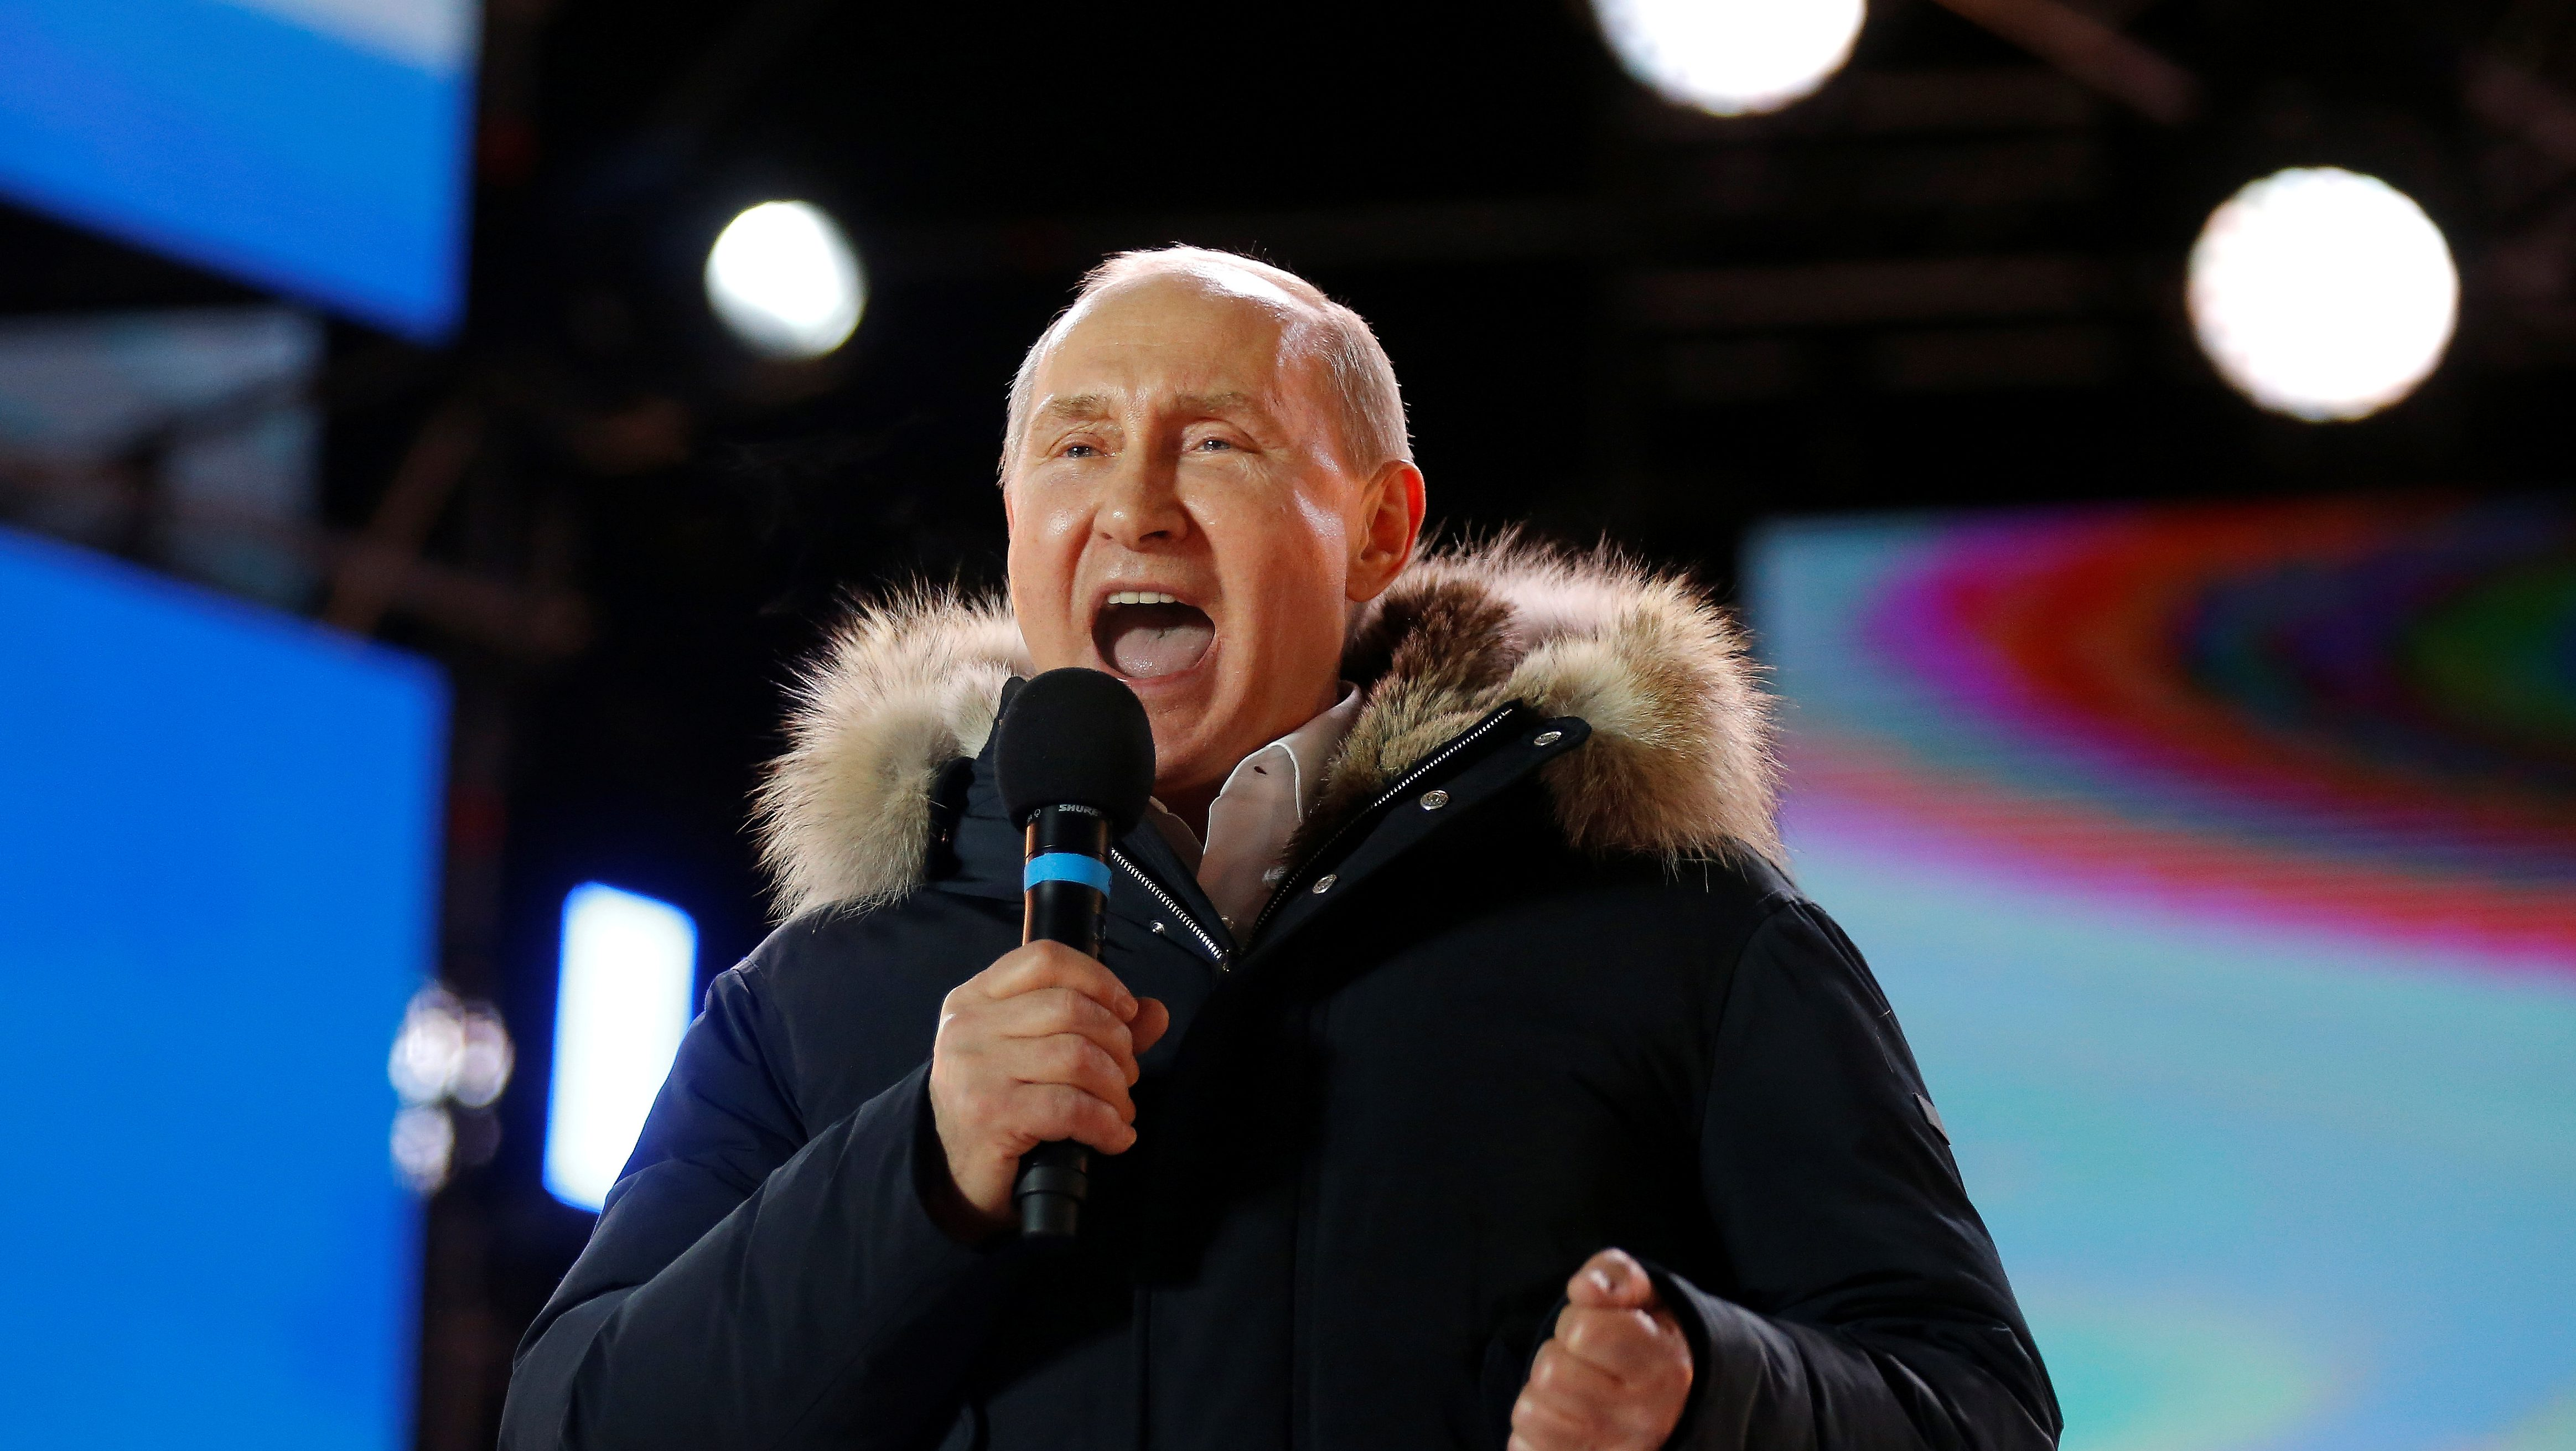 Russian President and Presidential candidate Vladimir Putin delivers a speech during a rally and concert marking the fourth anniversary of Russia's annexation of the Crimea region, at Manezhnaya Square in central Moscow, Russia March 18, 2018. Alexander Zemlianichenko/POOL via Reuters - RC1C06D990E0